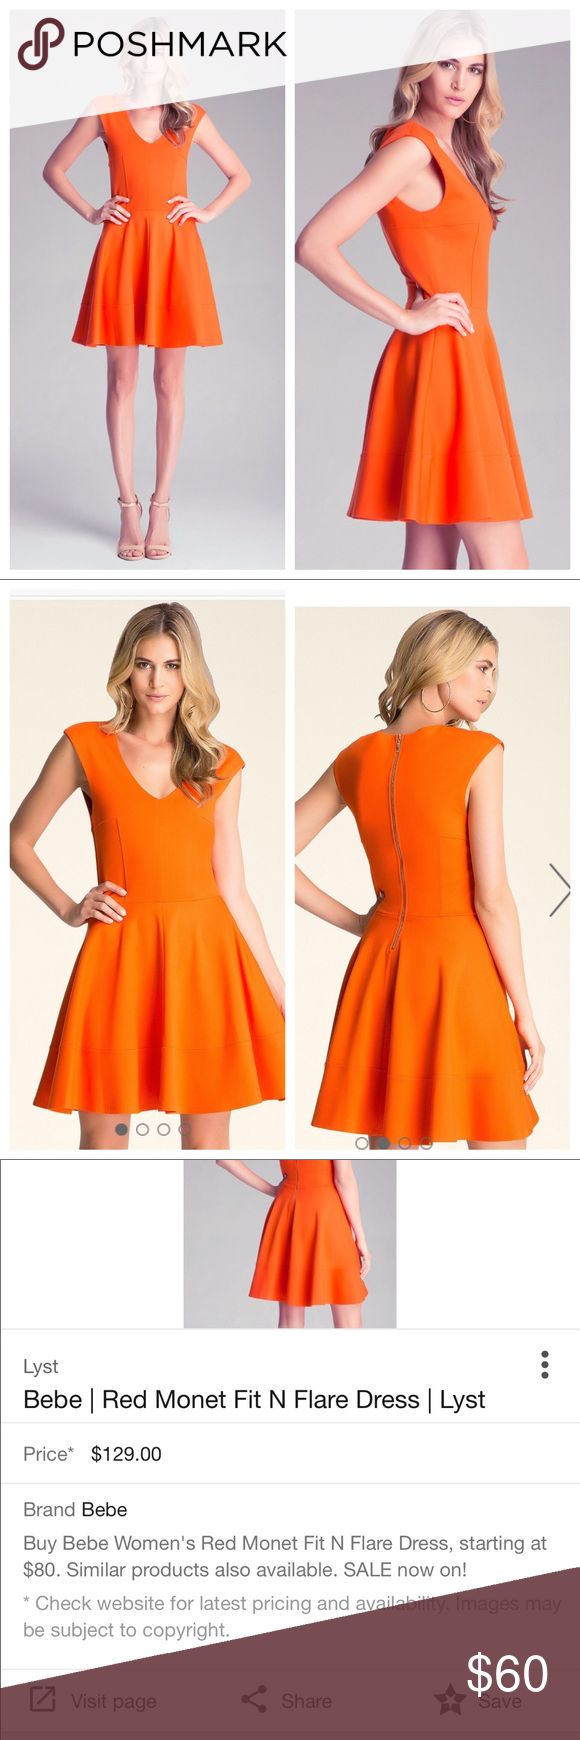 """Bebe Monet Fit and Flare Dress Bold, bright fiery orange. V neck circle dress features capped sleeves and falls perfectly in overlapping pleats. Full zippered back. Simplicity is perfect.  * 72% Viscose, 24% polyamide, 4% spandex * Hand wash * Imported * Center back to hem: 27"""" (68 cm) * Model is 5'10"""" and wears a US size S. perfect condition, worn only once. Size XXS but has a lot of wiggle room and could fit up to a size 4. Measurements provided upon request. bebe Dresses"""